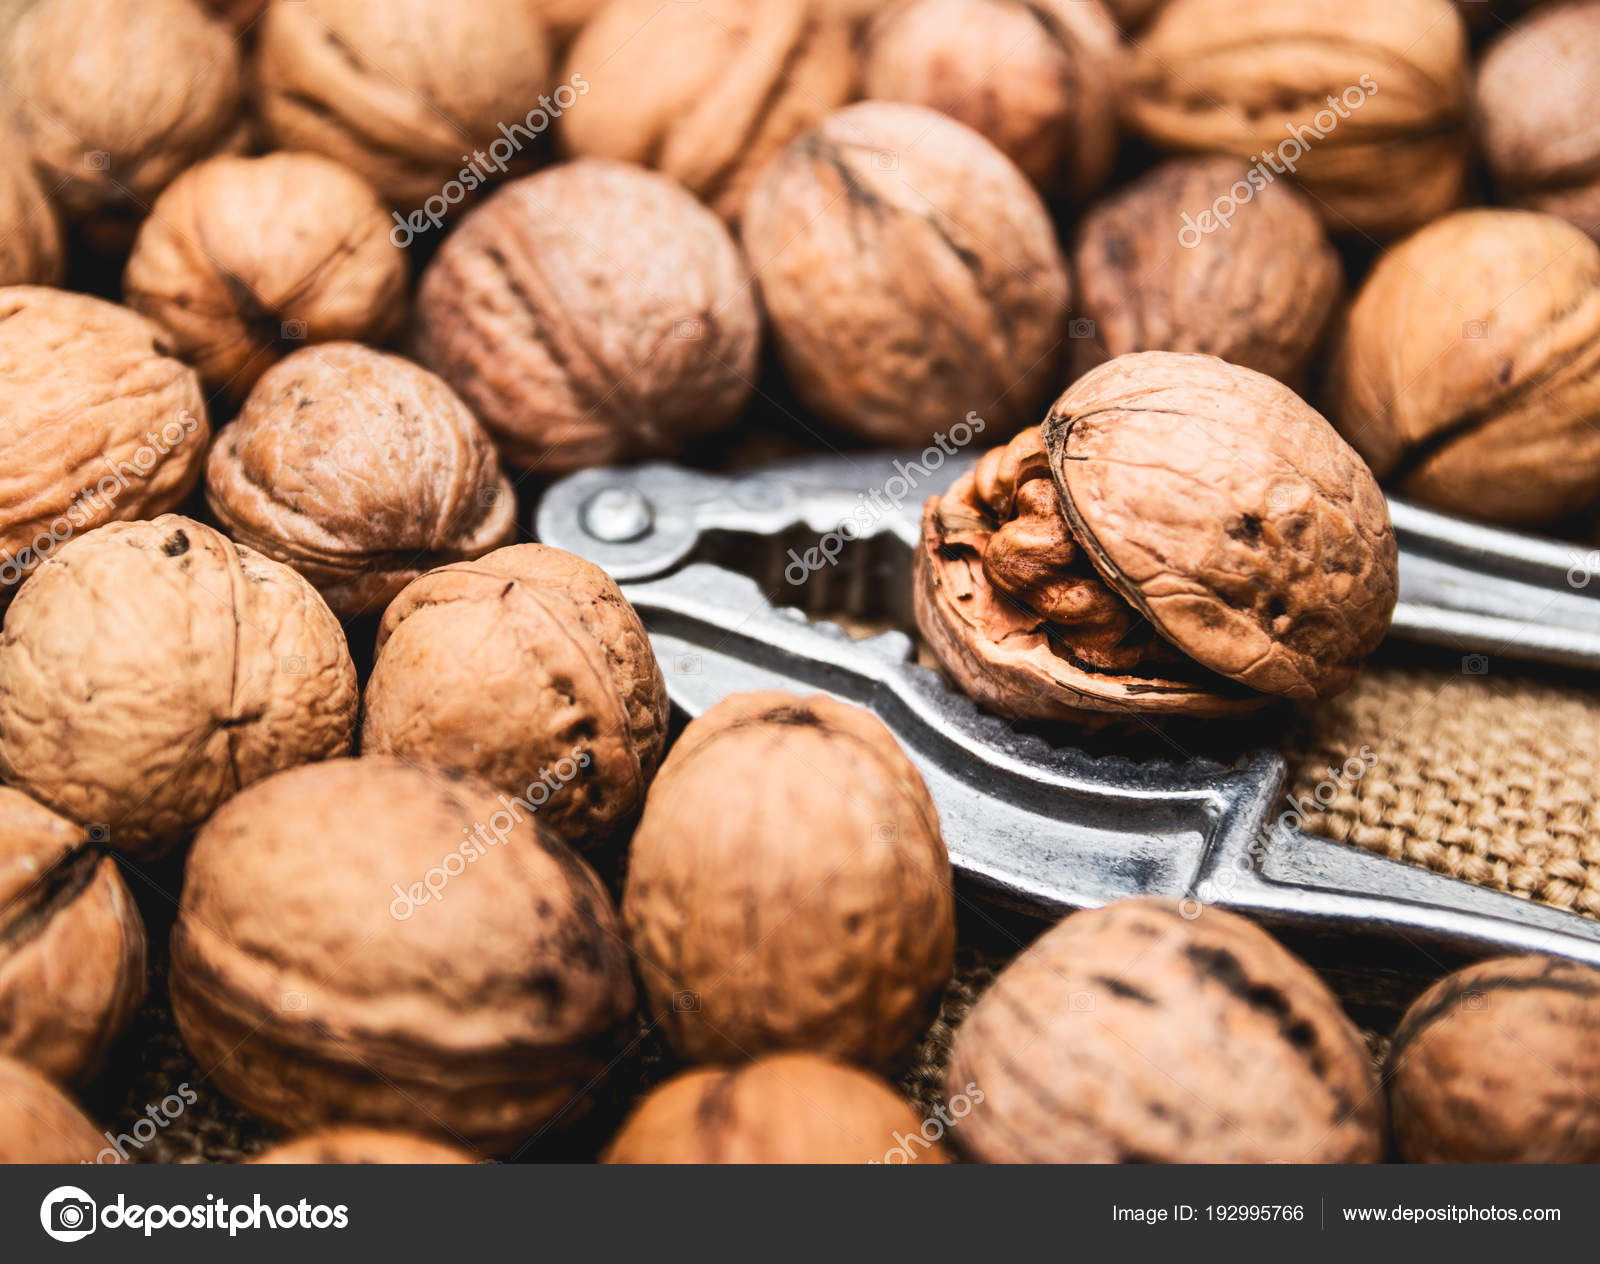 Fresh uncleaned in the shell organic walnuts with nut